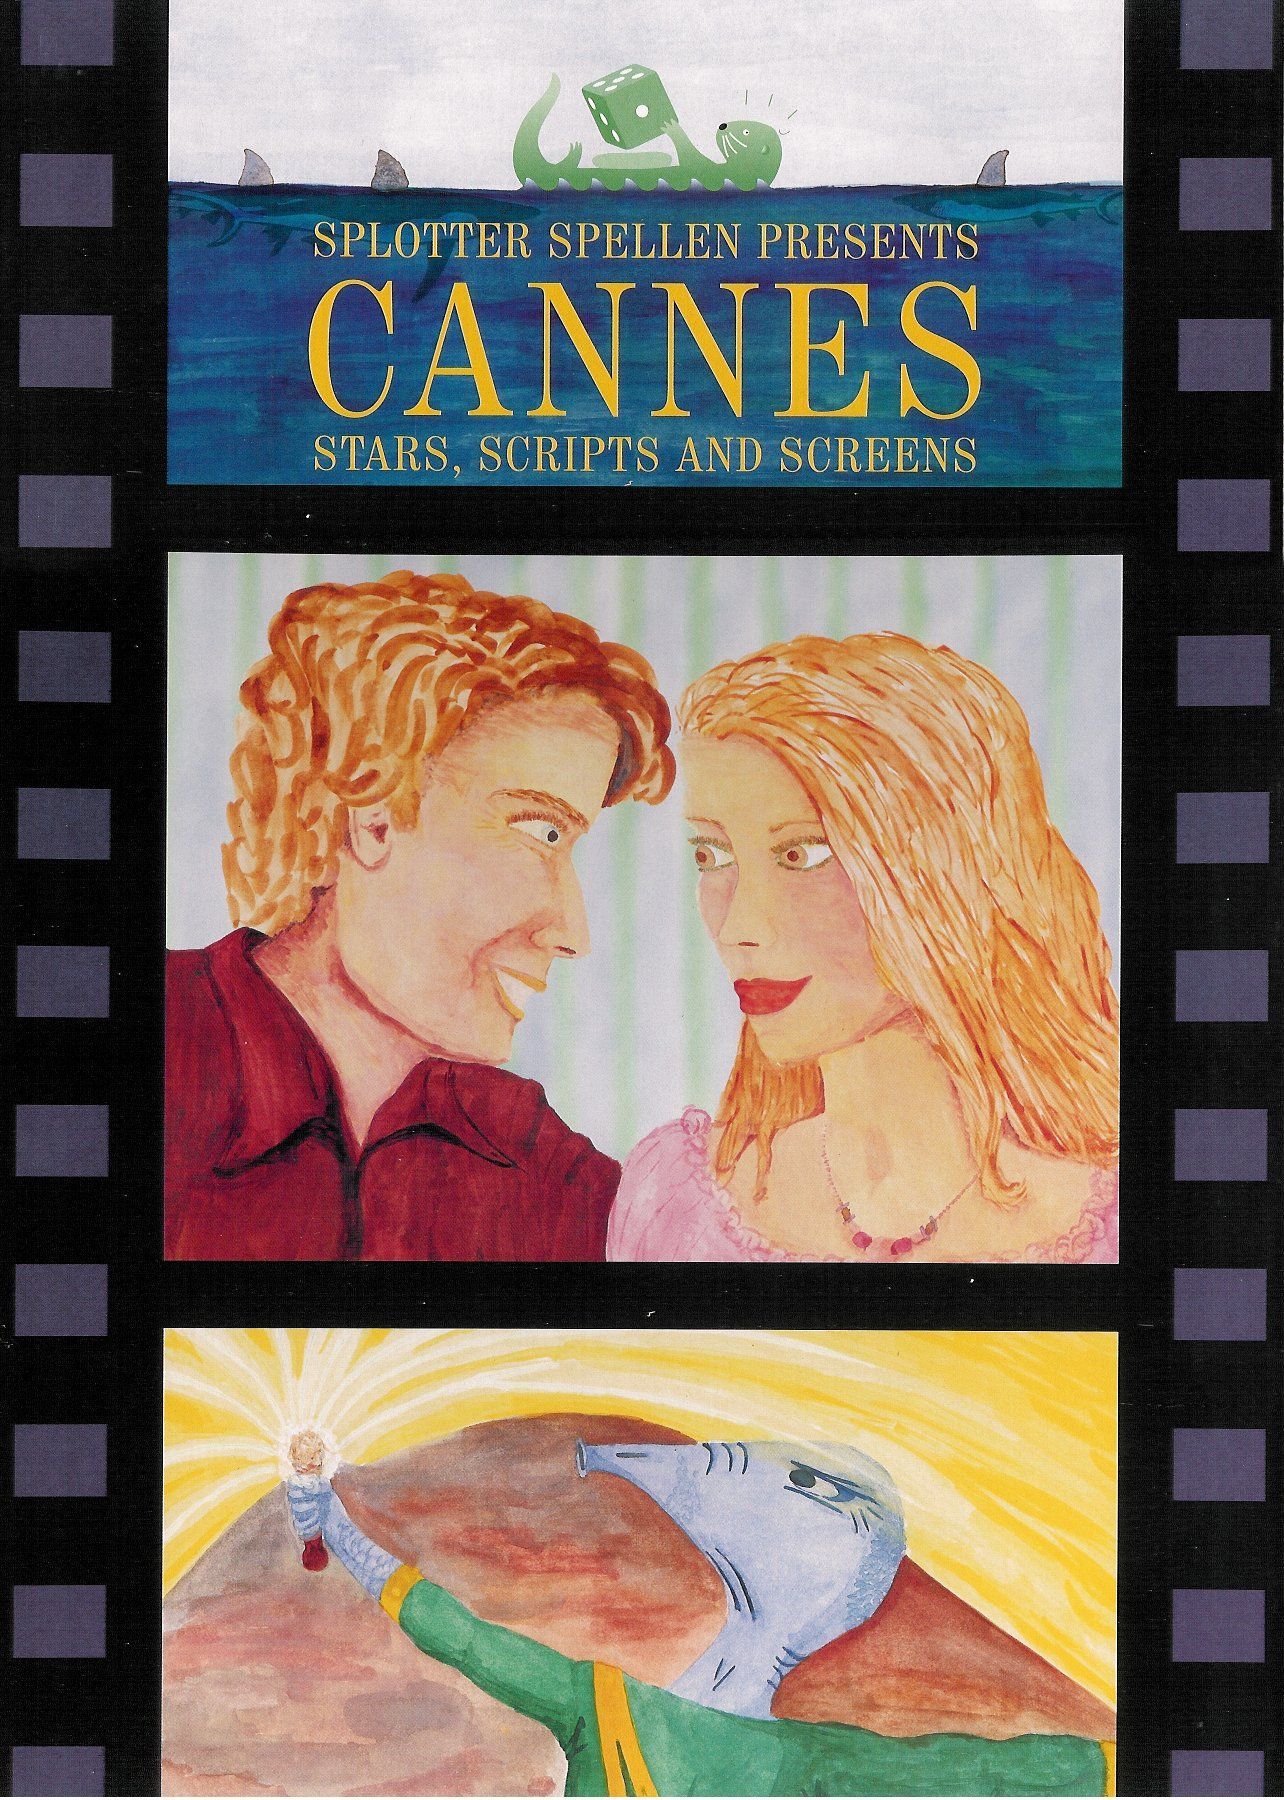 Cannes: Stars, Scripts and Screens